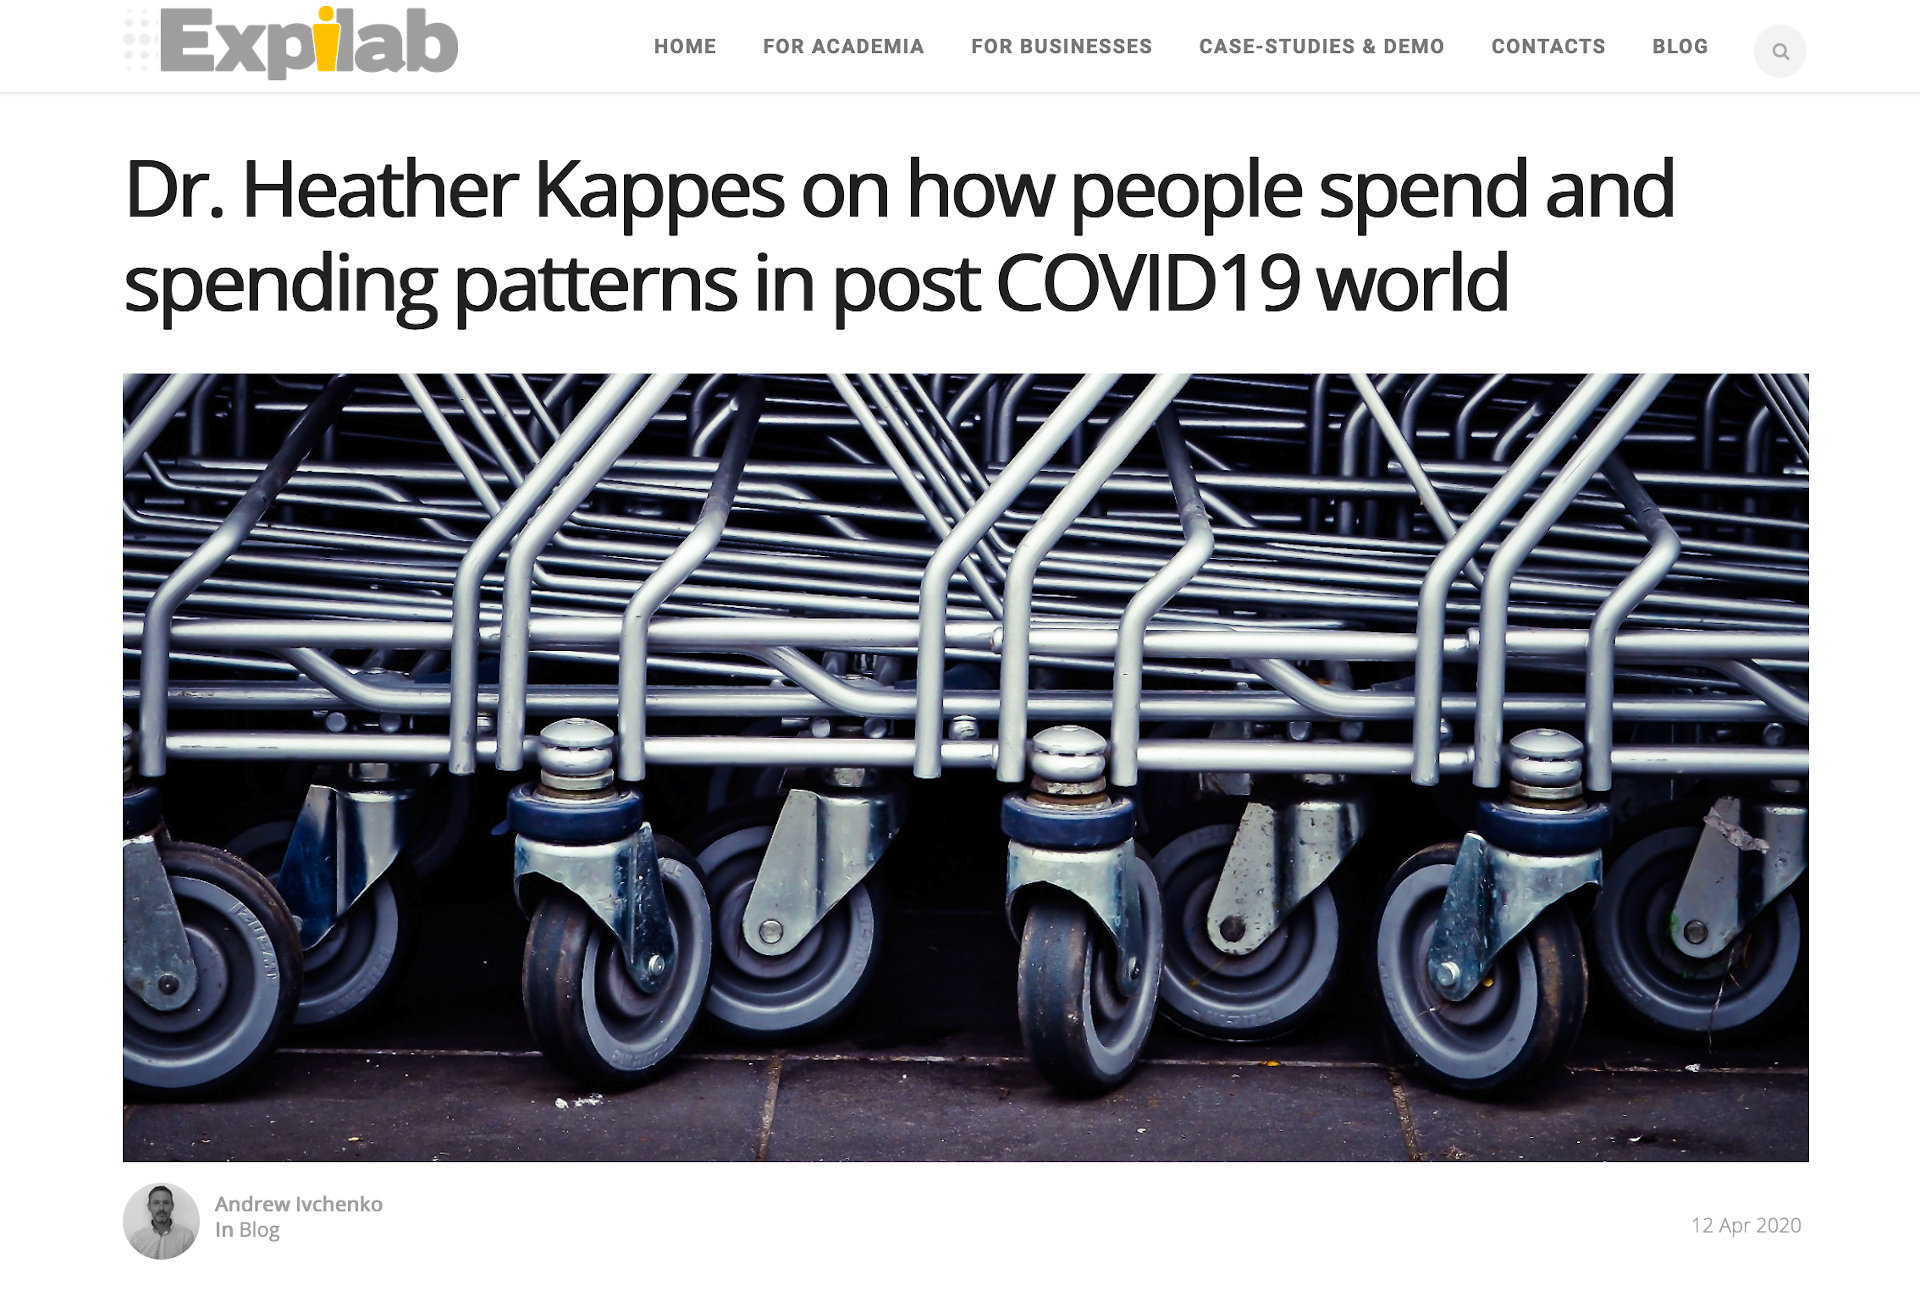 Dr. Heather Kappes on how people spend and spending patterns in post COVID19 world